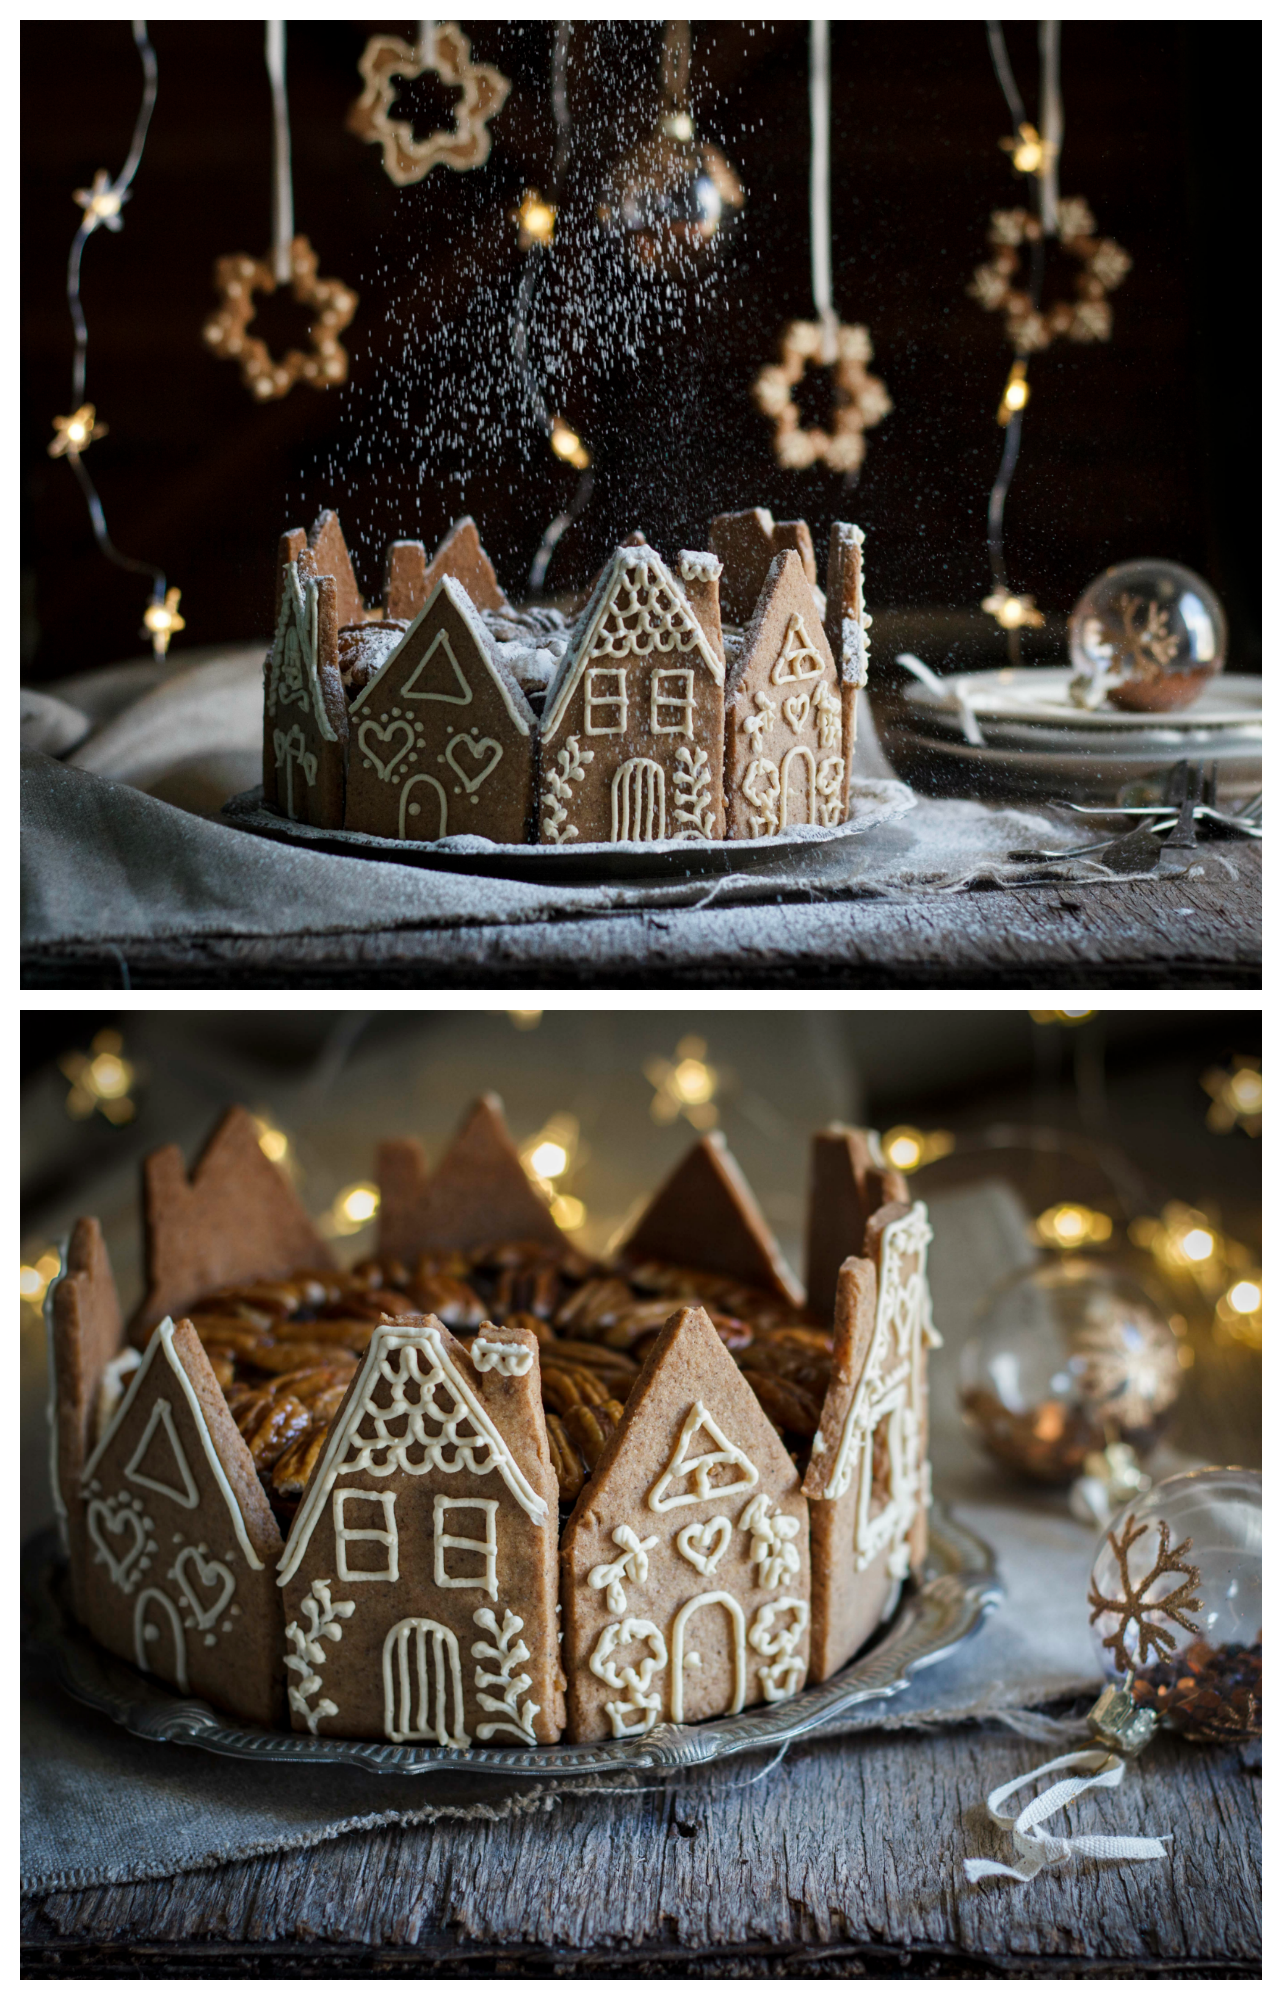 Perfect Gingerbread Houses Recipes And Designs Craftionary Christmas Baking Gingerbread House Recipe Christmas Cake